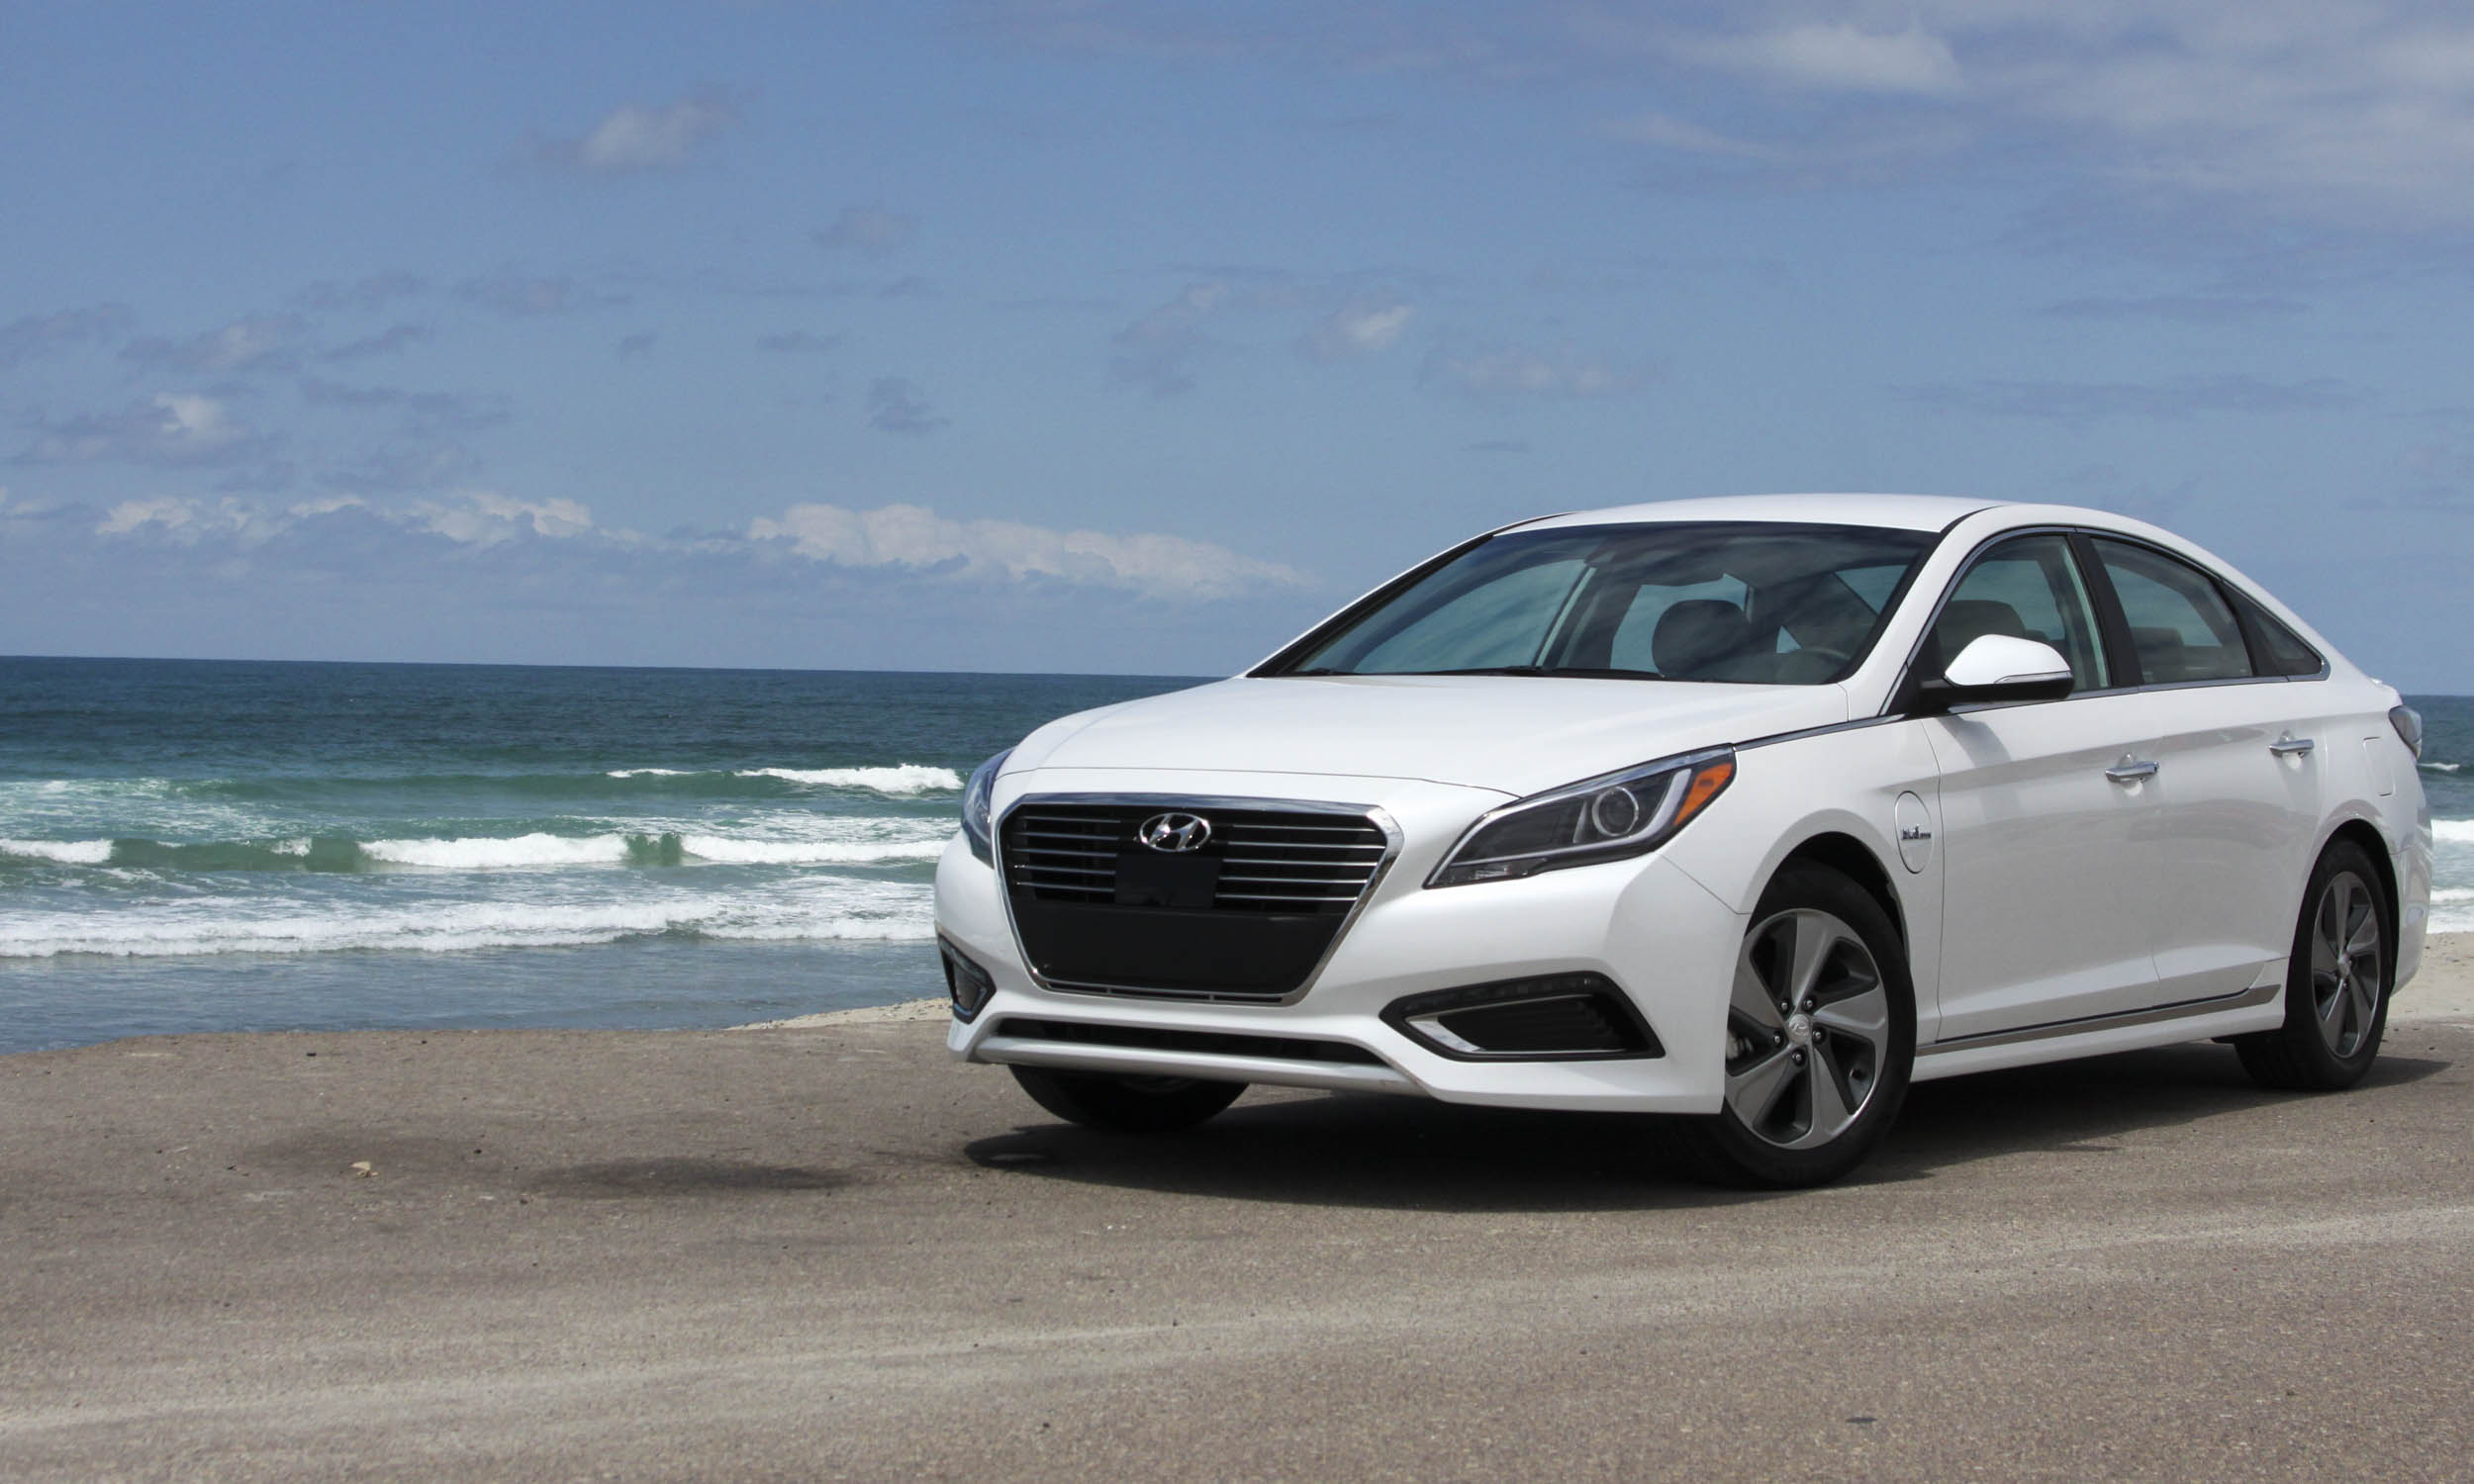 2016 hyundai sonata hybrid plug in first drive review autonxt. Black Bedroom Furniture Sets. Home Design Ideas